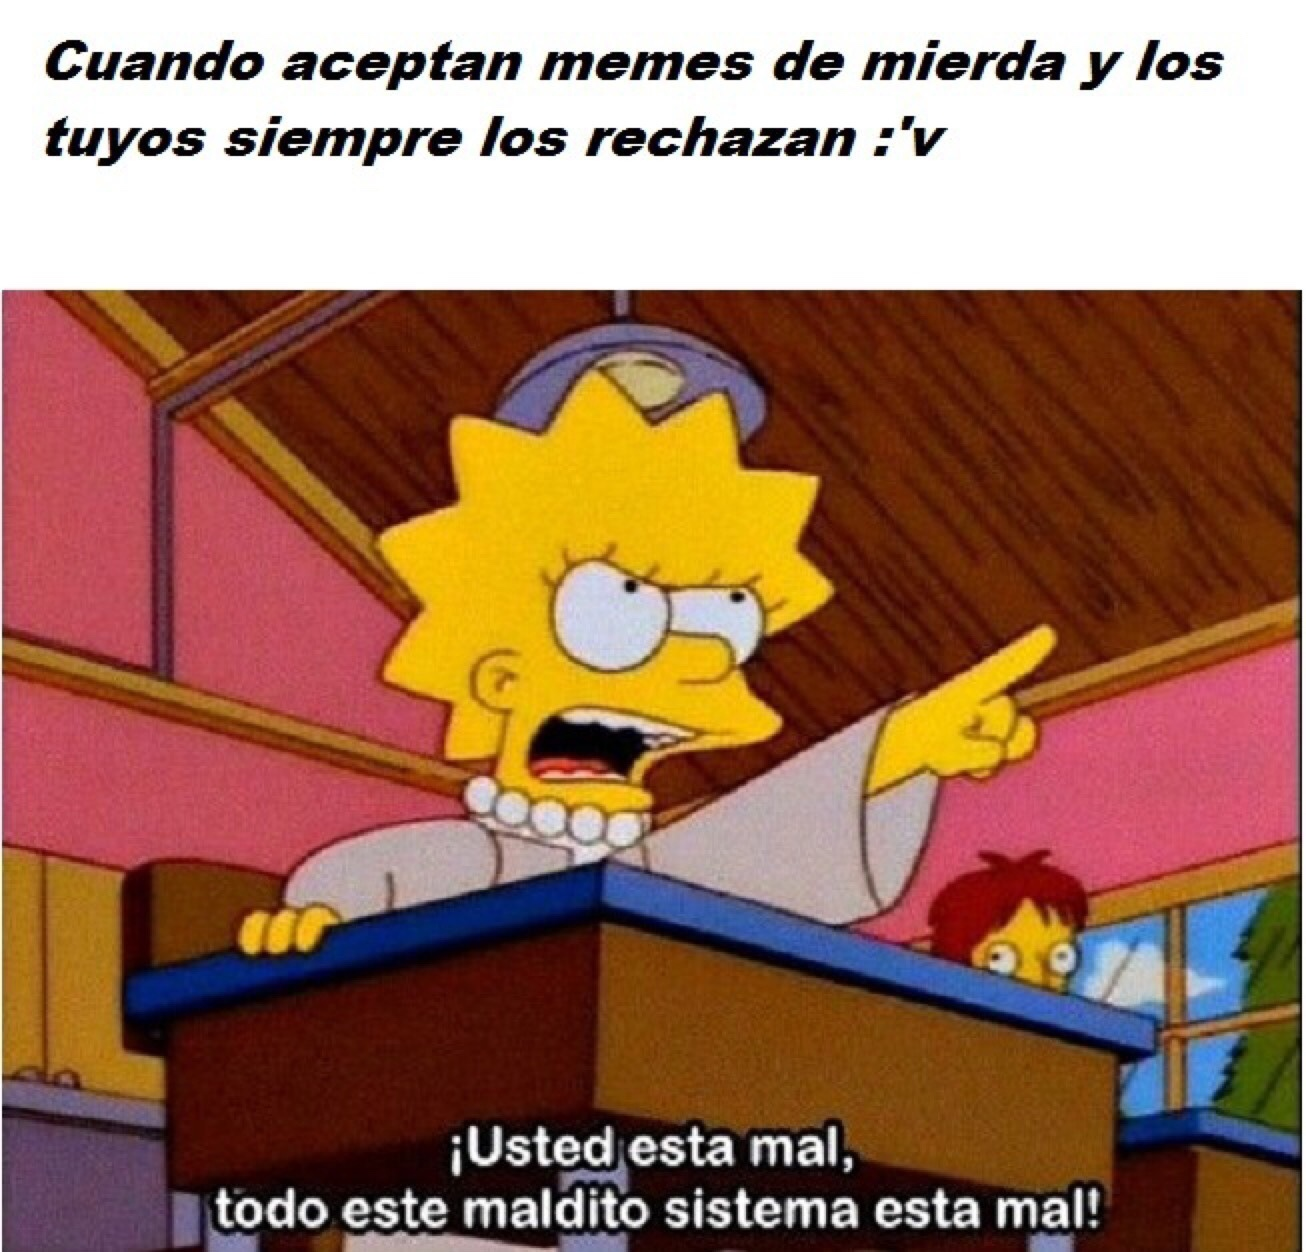 madre mía guilly - meme